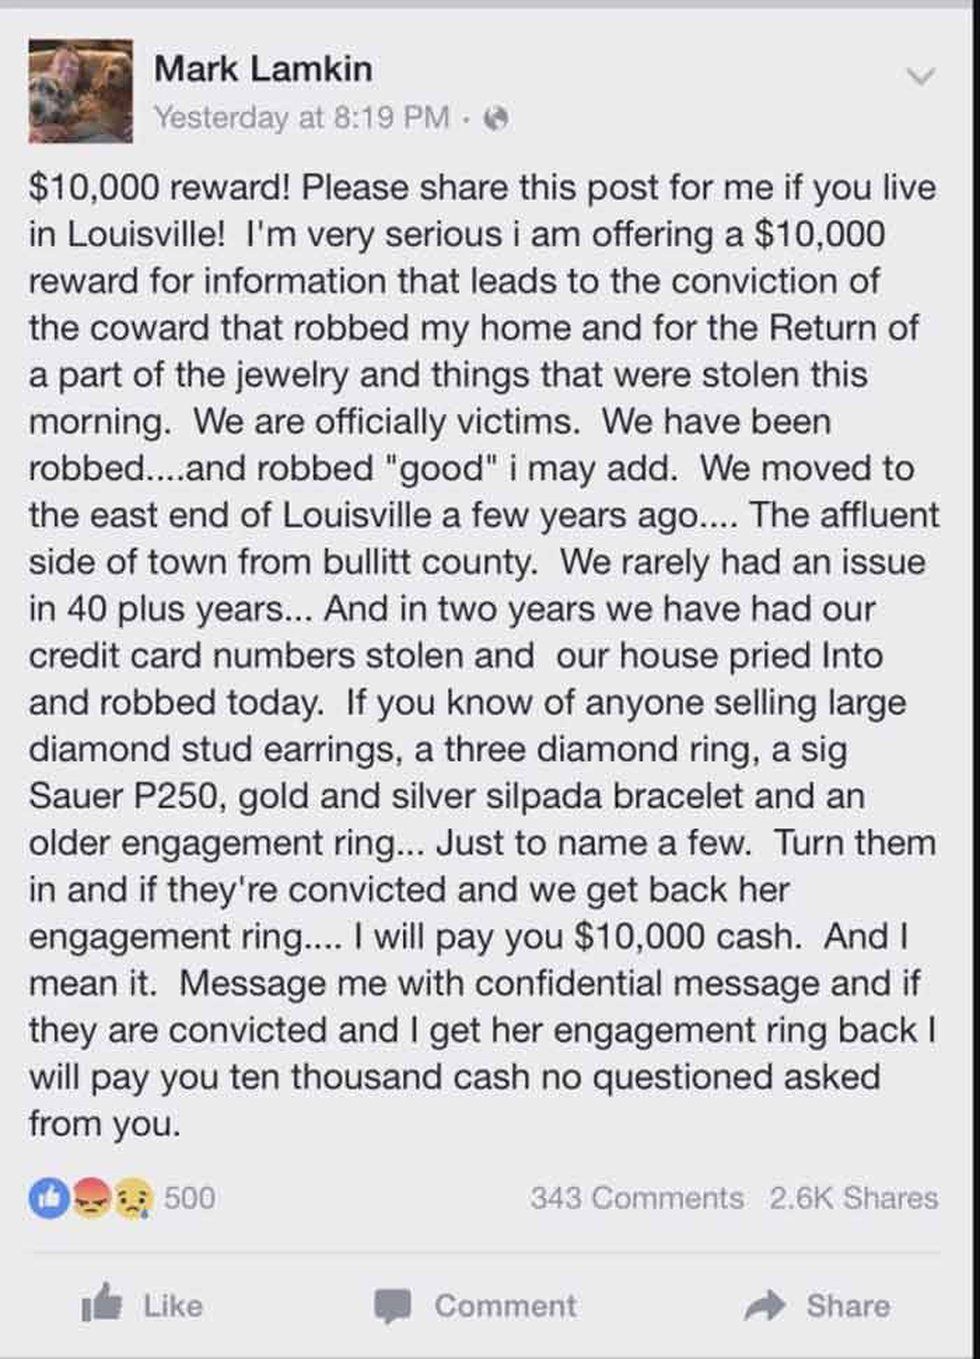 Here is Lamkin's plea for the return of the items taken from his home. (Source: Facebook)